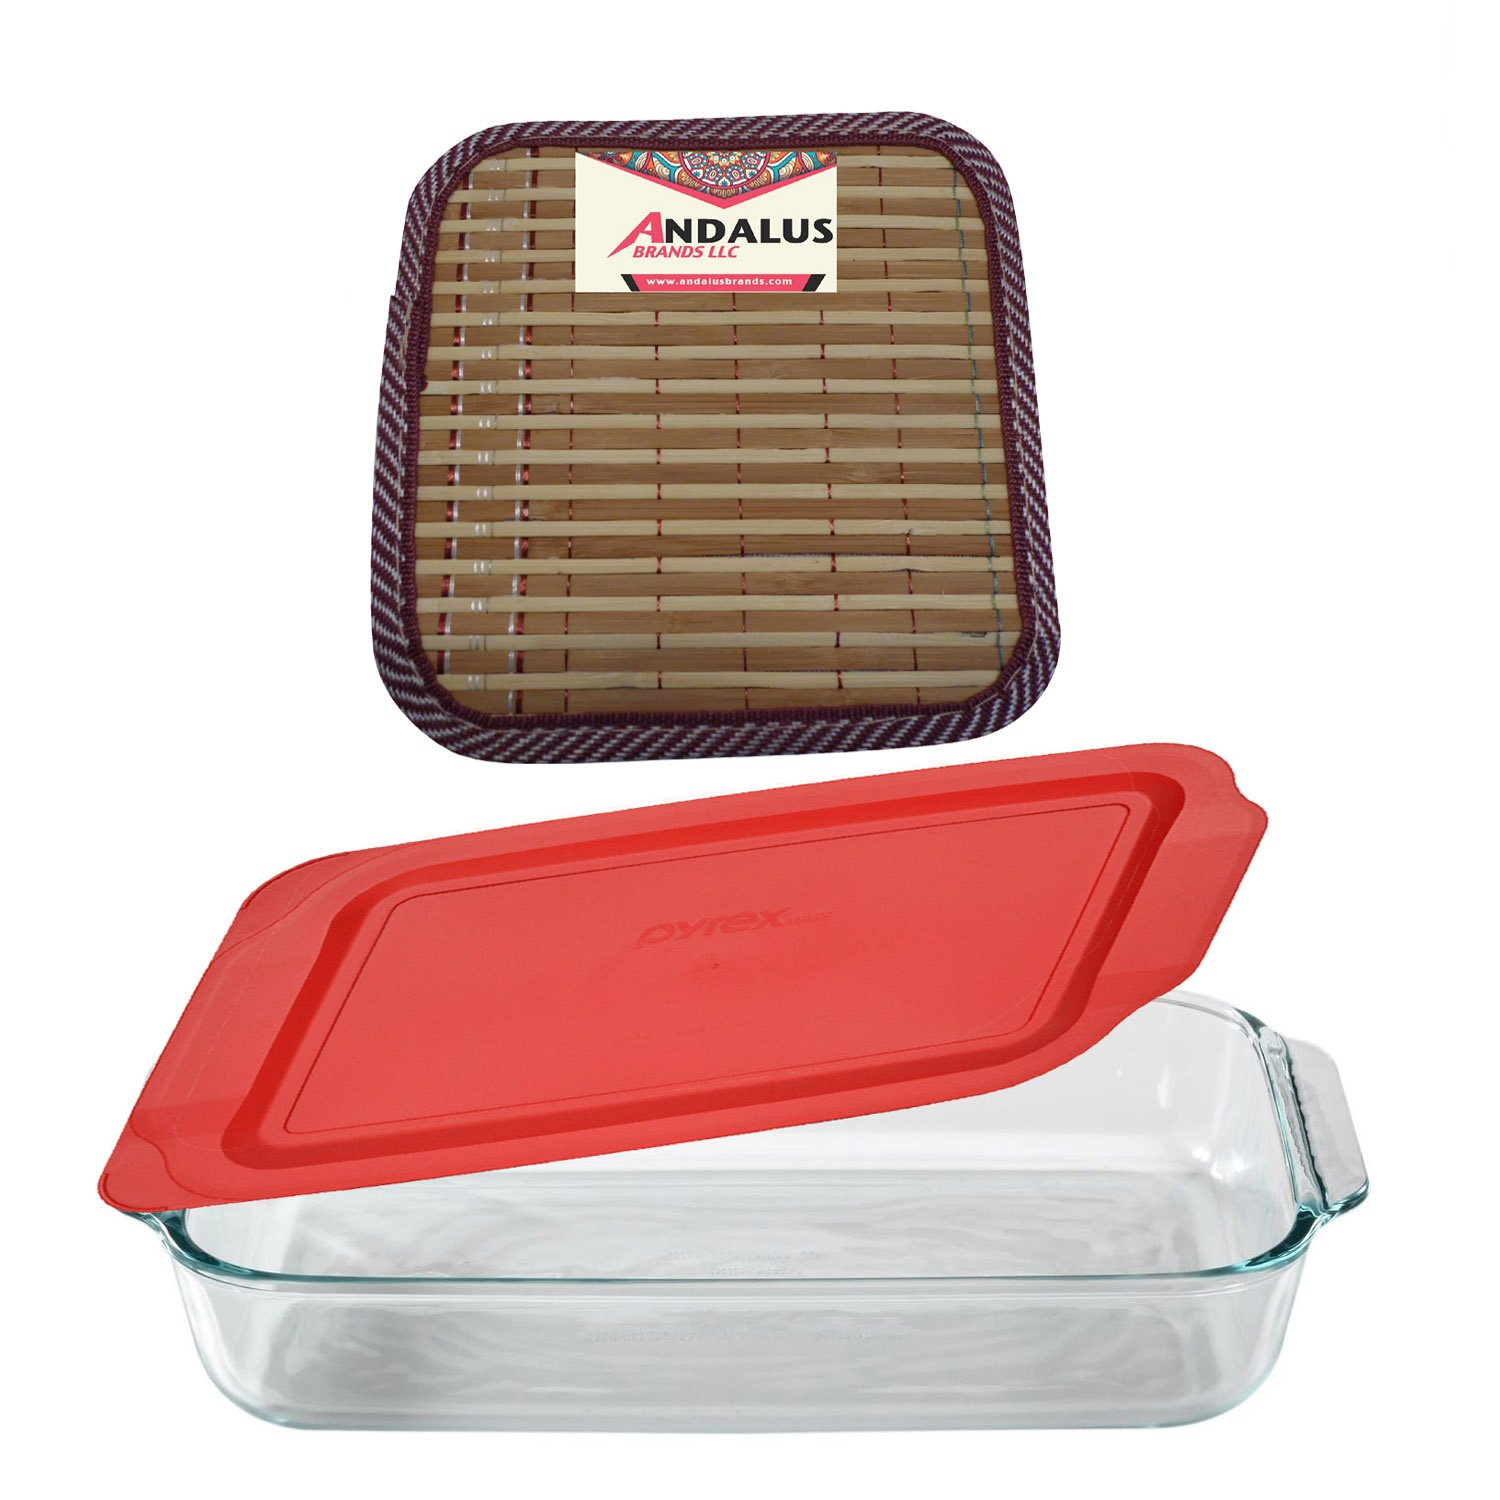 Pyrex Basics 3 Quart Glass Oblong Baking Dish with Red Plastic Lid, Lasagna Pan, Includes Bamboo Hot Pad By Andalus SYNCHKG129719